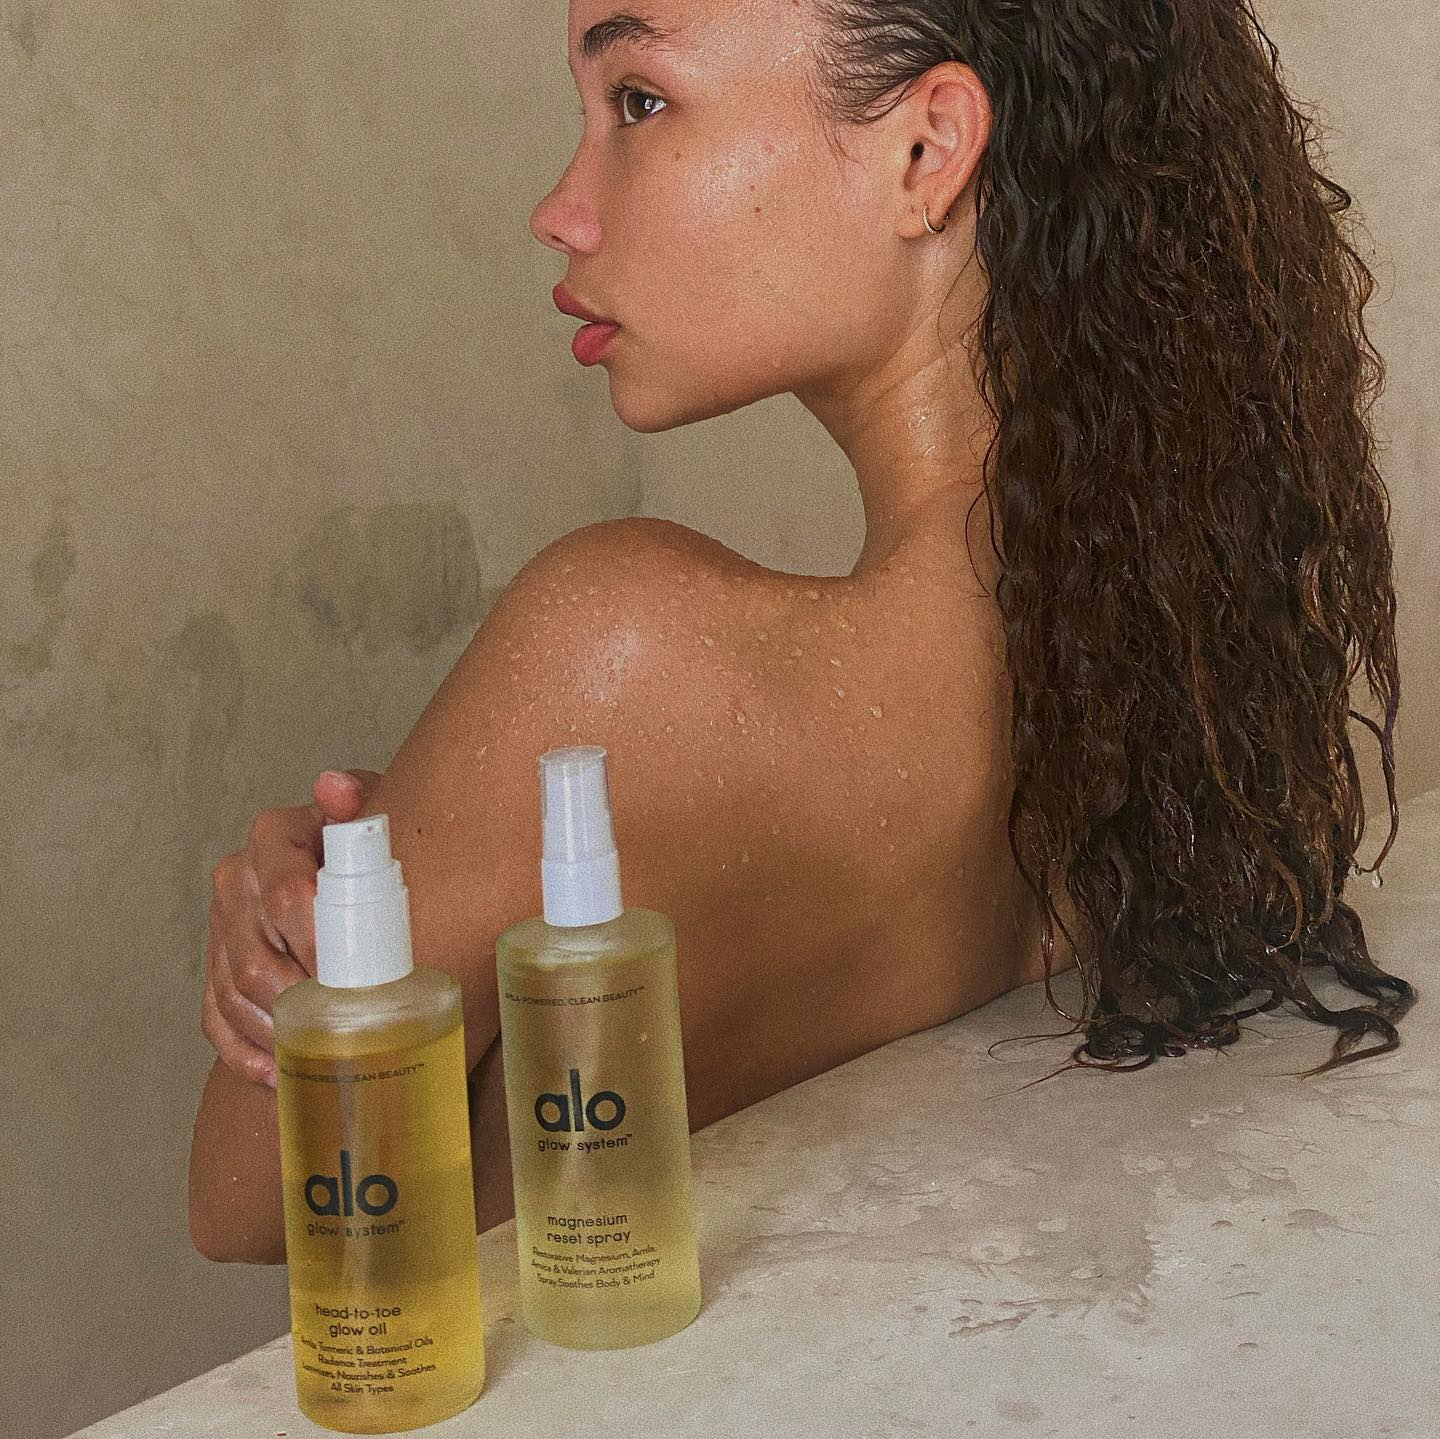 @ashley_moore_ enjoying her Magnesium Reset Spray and Head-To-Toe Glow Oil pre- and post-shower.